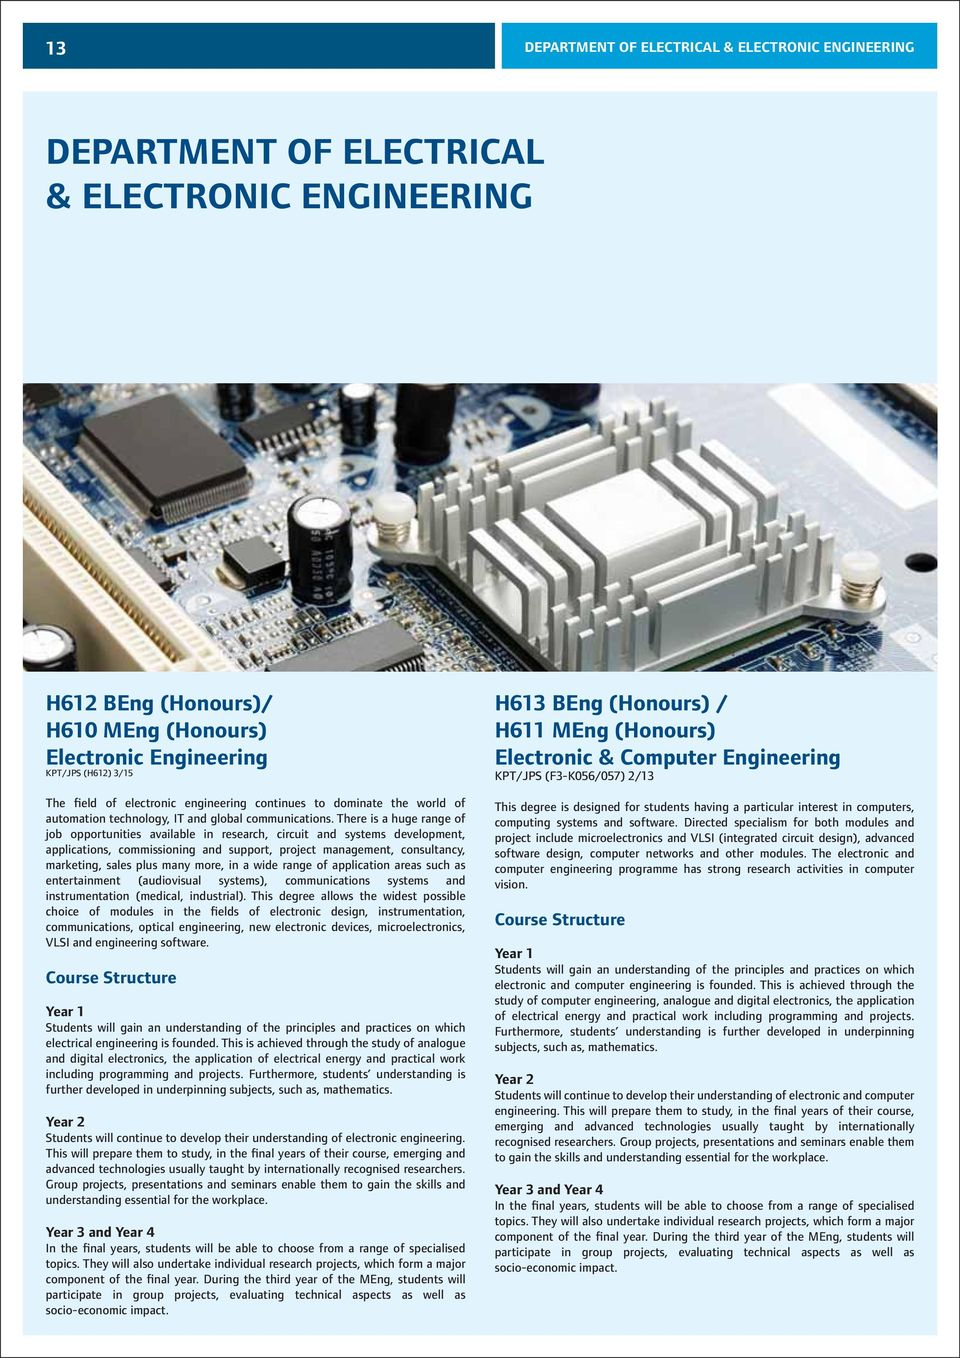 Faculty Of Foundation Undergraduate Programmes Pdf Electronic Engineering Project For Technical Study Digital There Is A Huge Range Job Opportunities Available In Research Circuit And Systems Development 15 Department Electrical